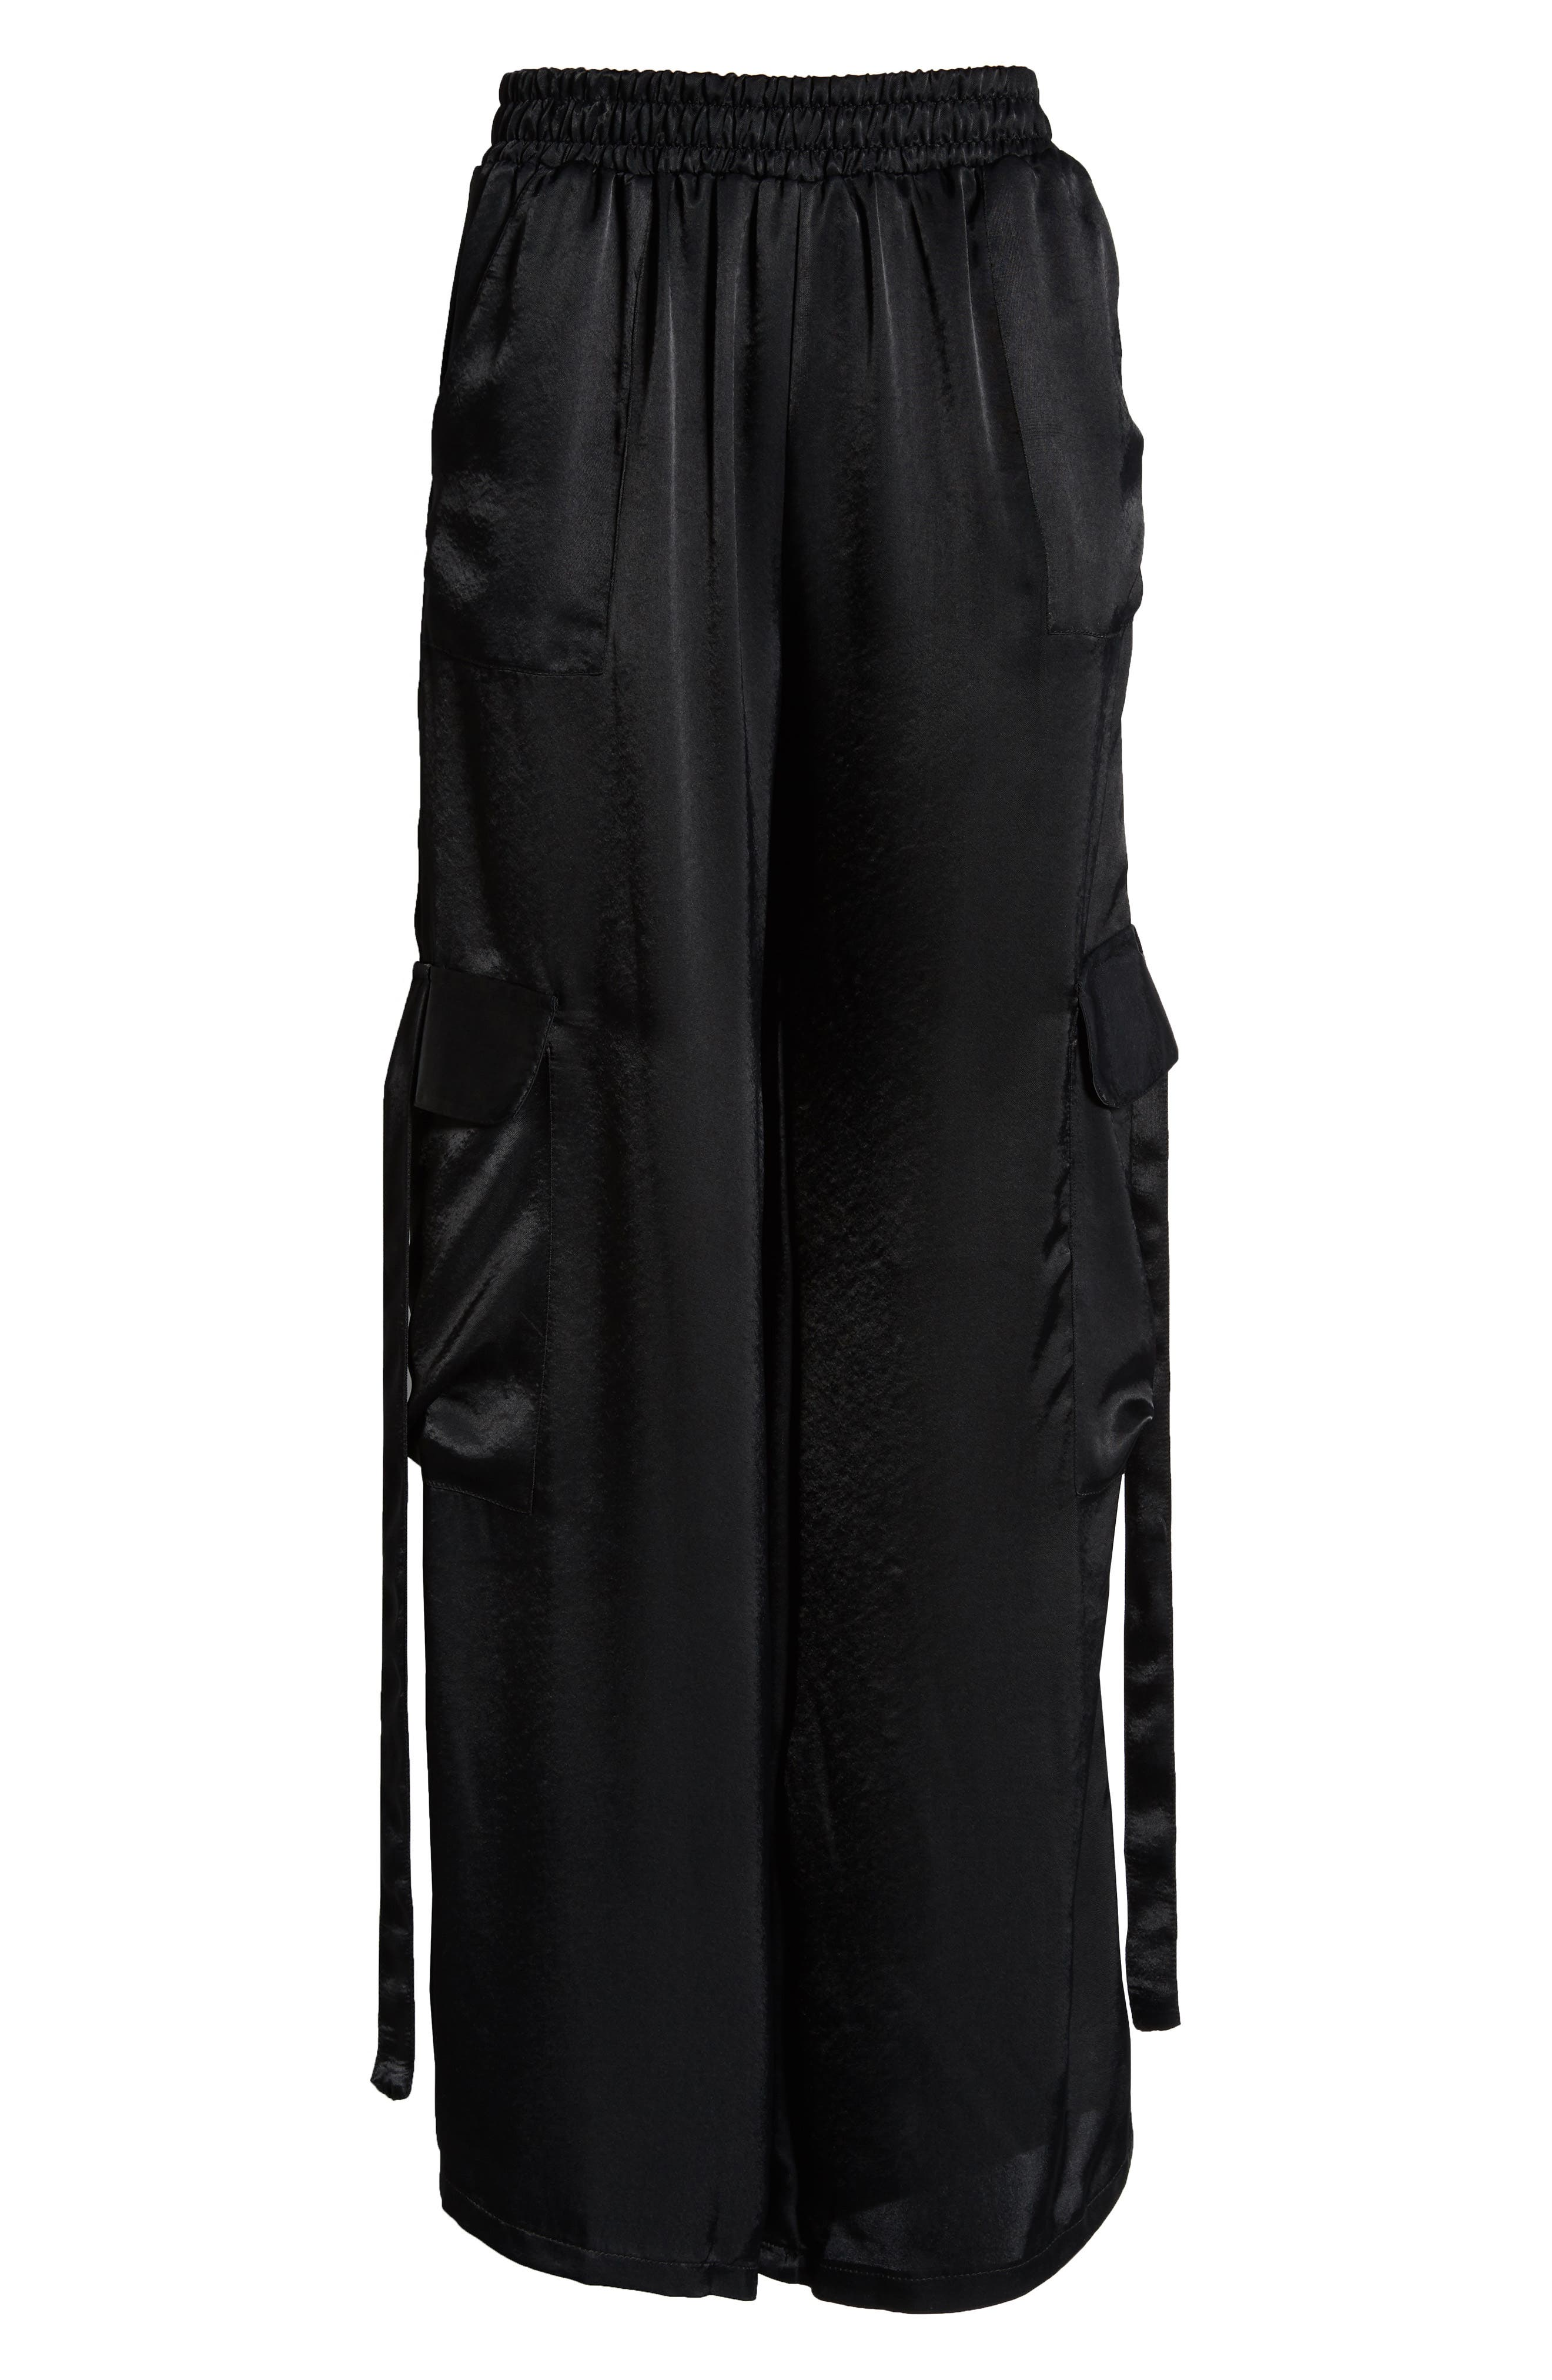 x We Own the Night Satin Combat Wide Leg Trousers,                             Alternate thumbnail 7, color,                             BLACK